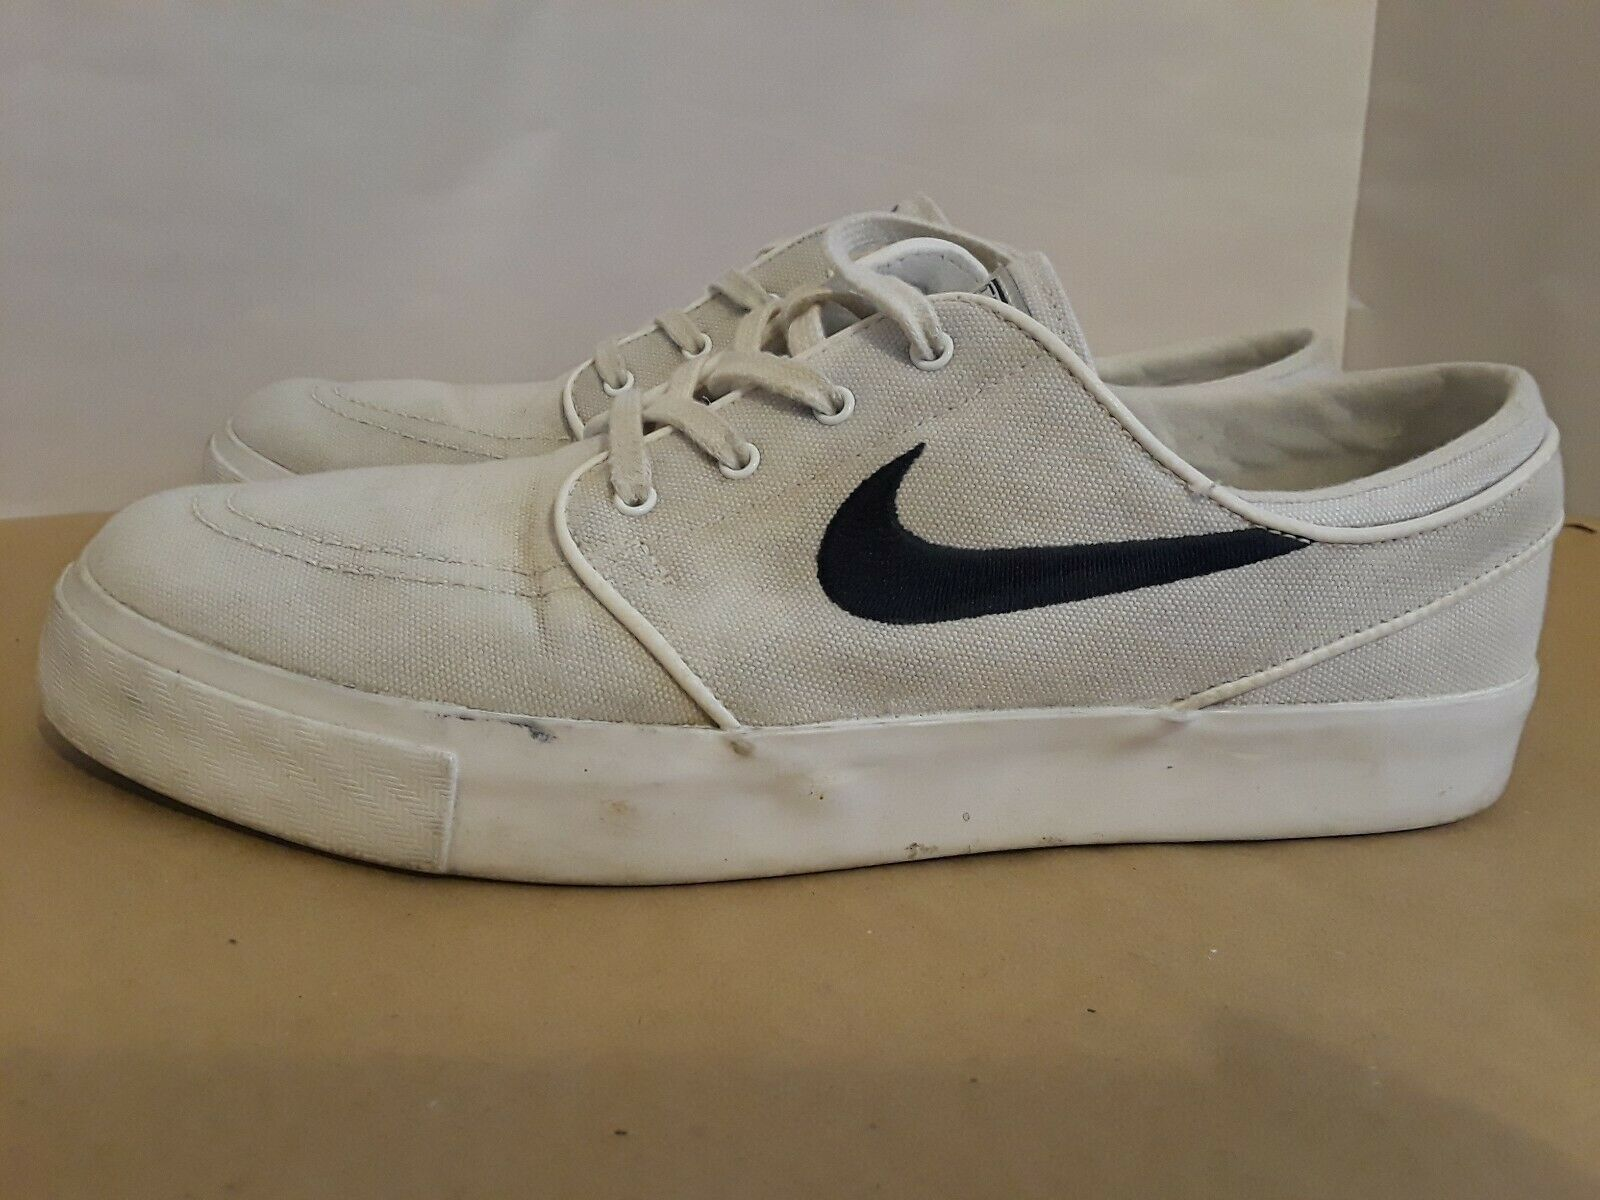 salario sinsonte Adversario  Nike SB Zoom Stefan Janoski Canvas Skate Shoes Mens 7 All White for sale  online | eBay